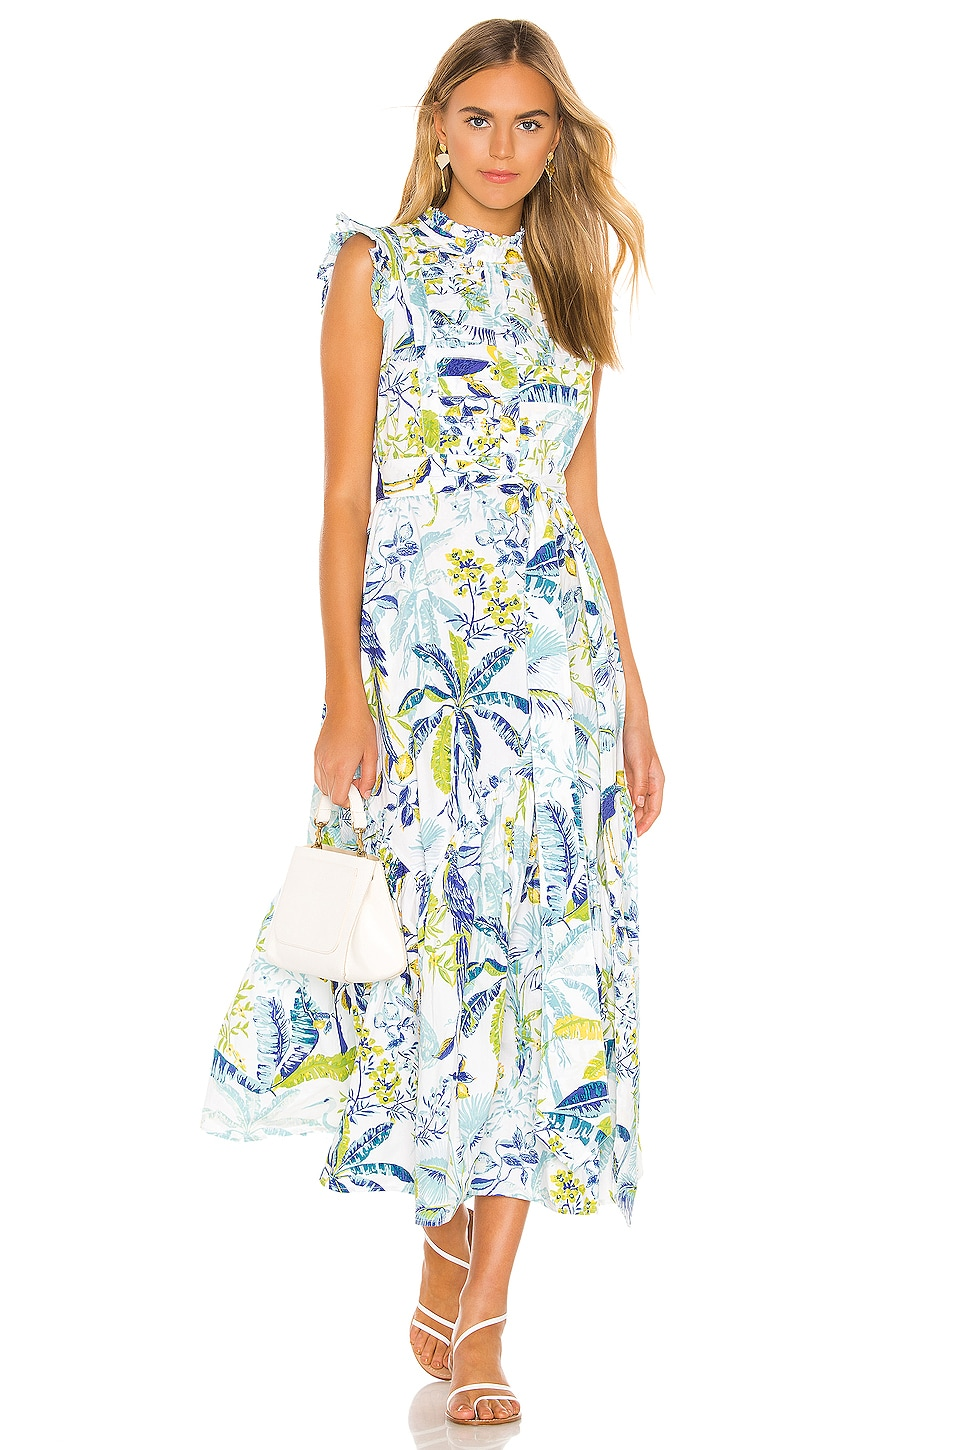 Banjanan Amazon Dress in Lisbon Garden White